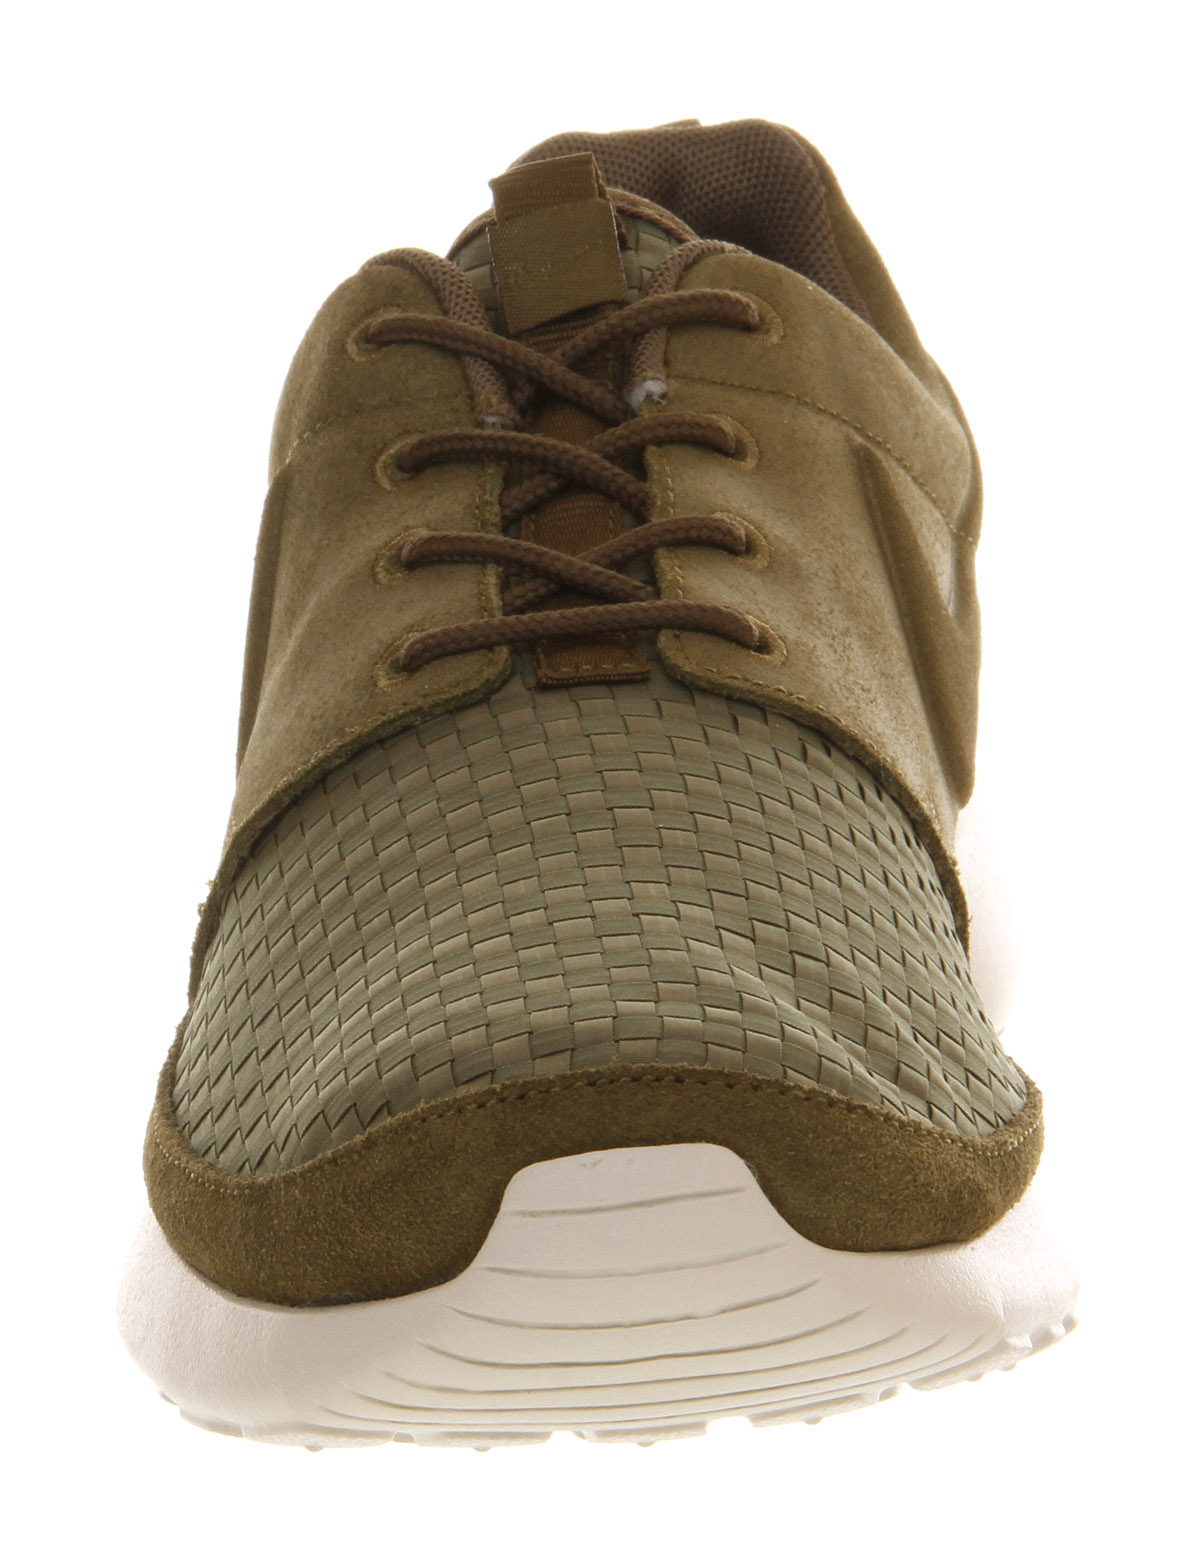 lyst nike roshe run olive green sail woven tag in green. Black Bedroom Furniture Sets. Home Design Ideas